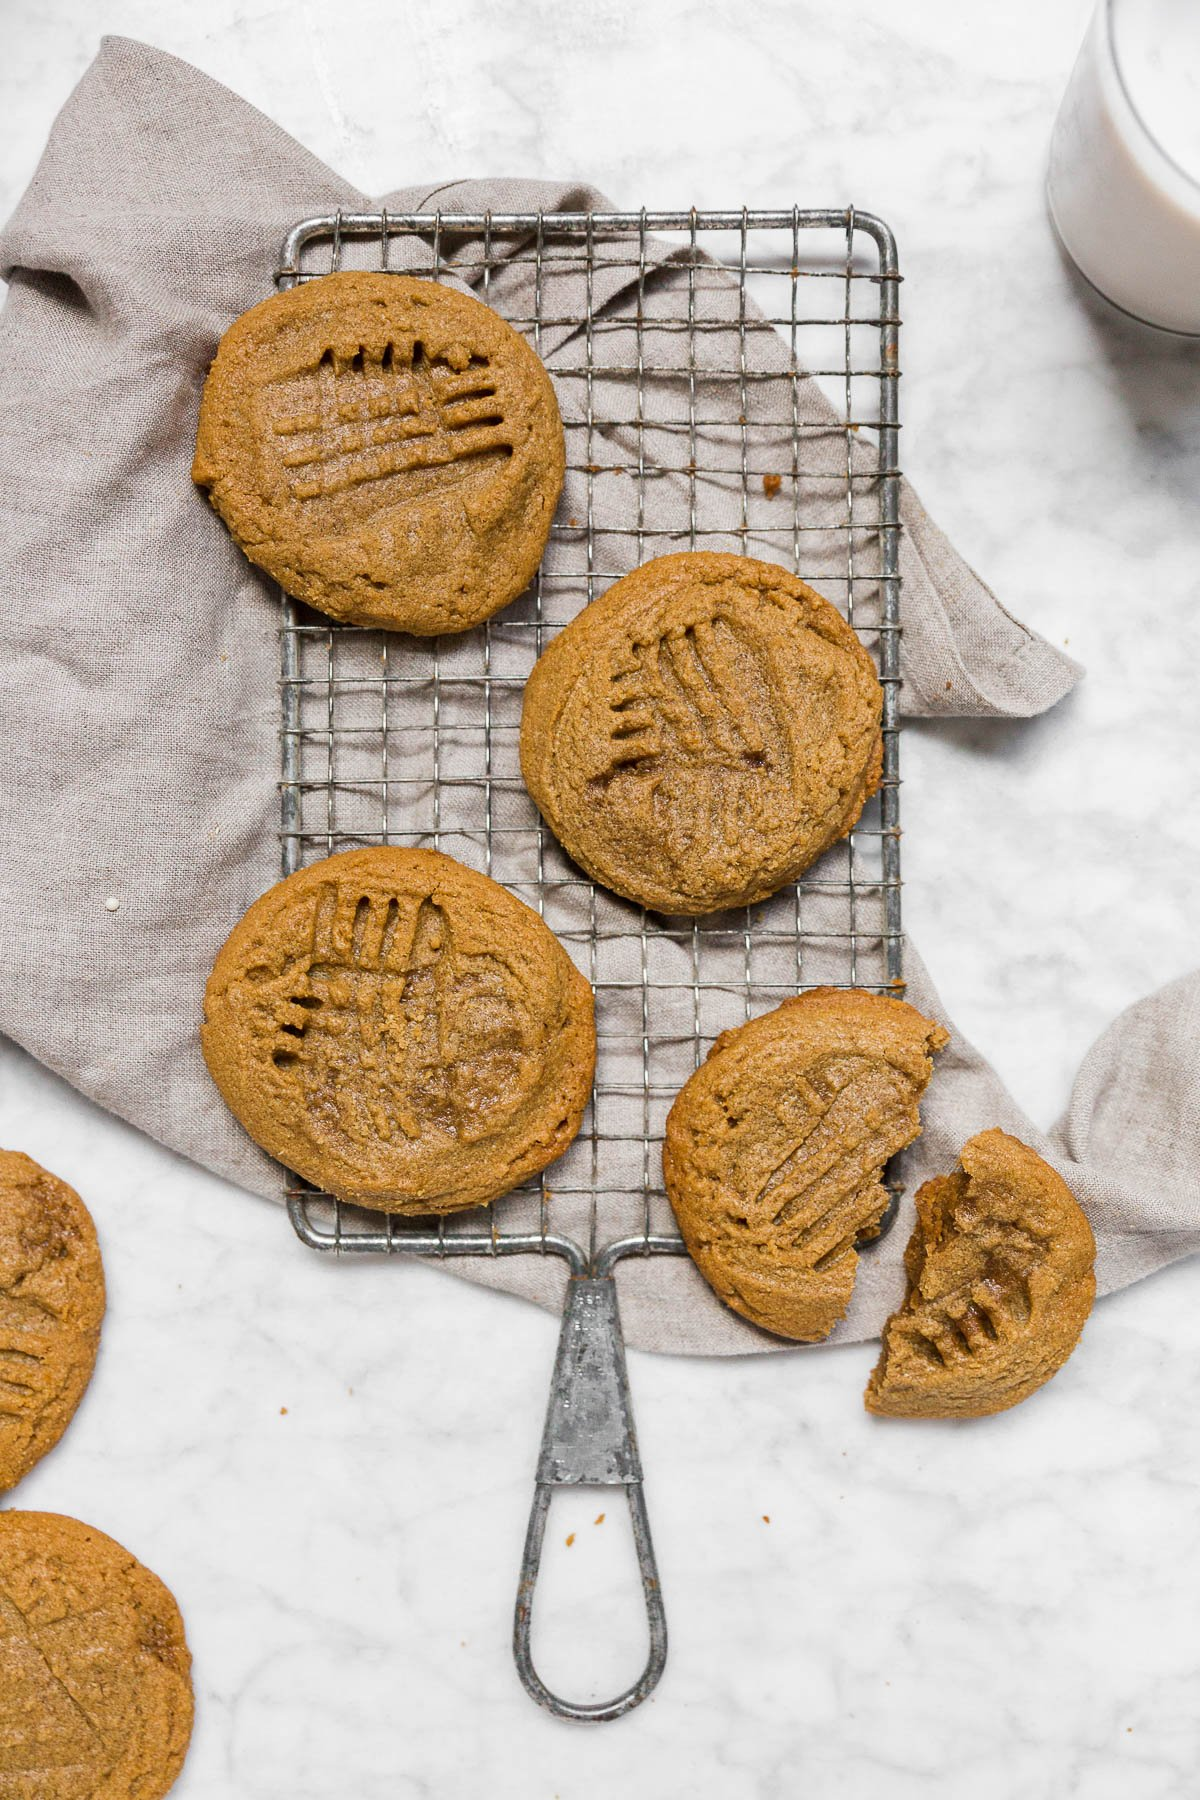 3 Ingredient Flourless Peanut Butter Cookies Gluten Free And Dairy Free